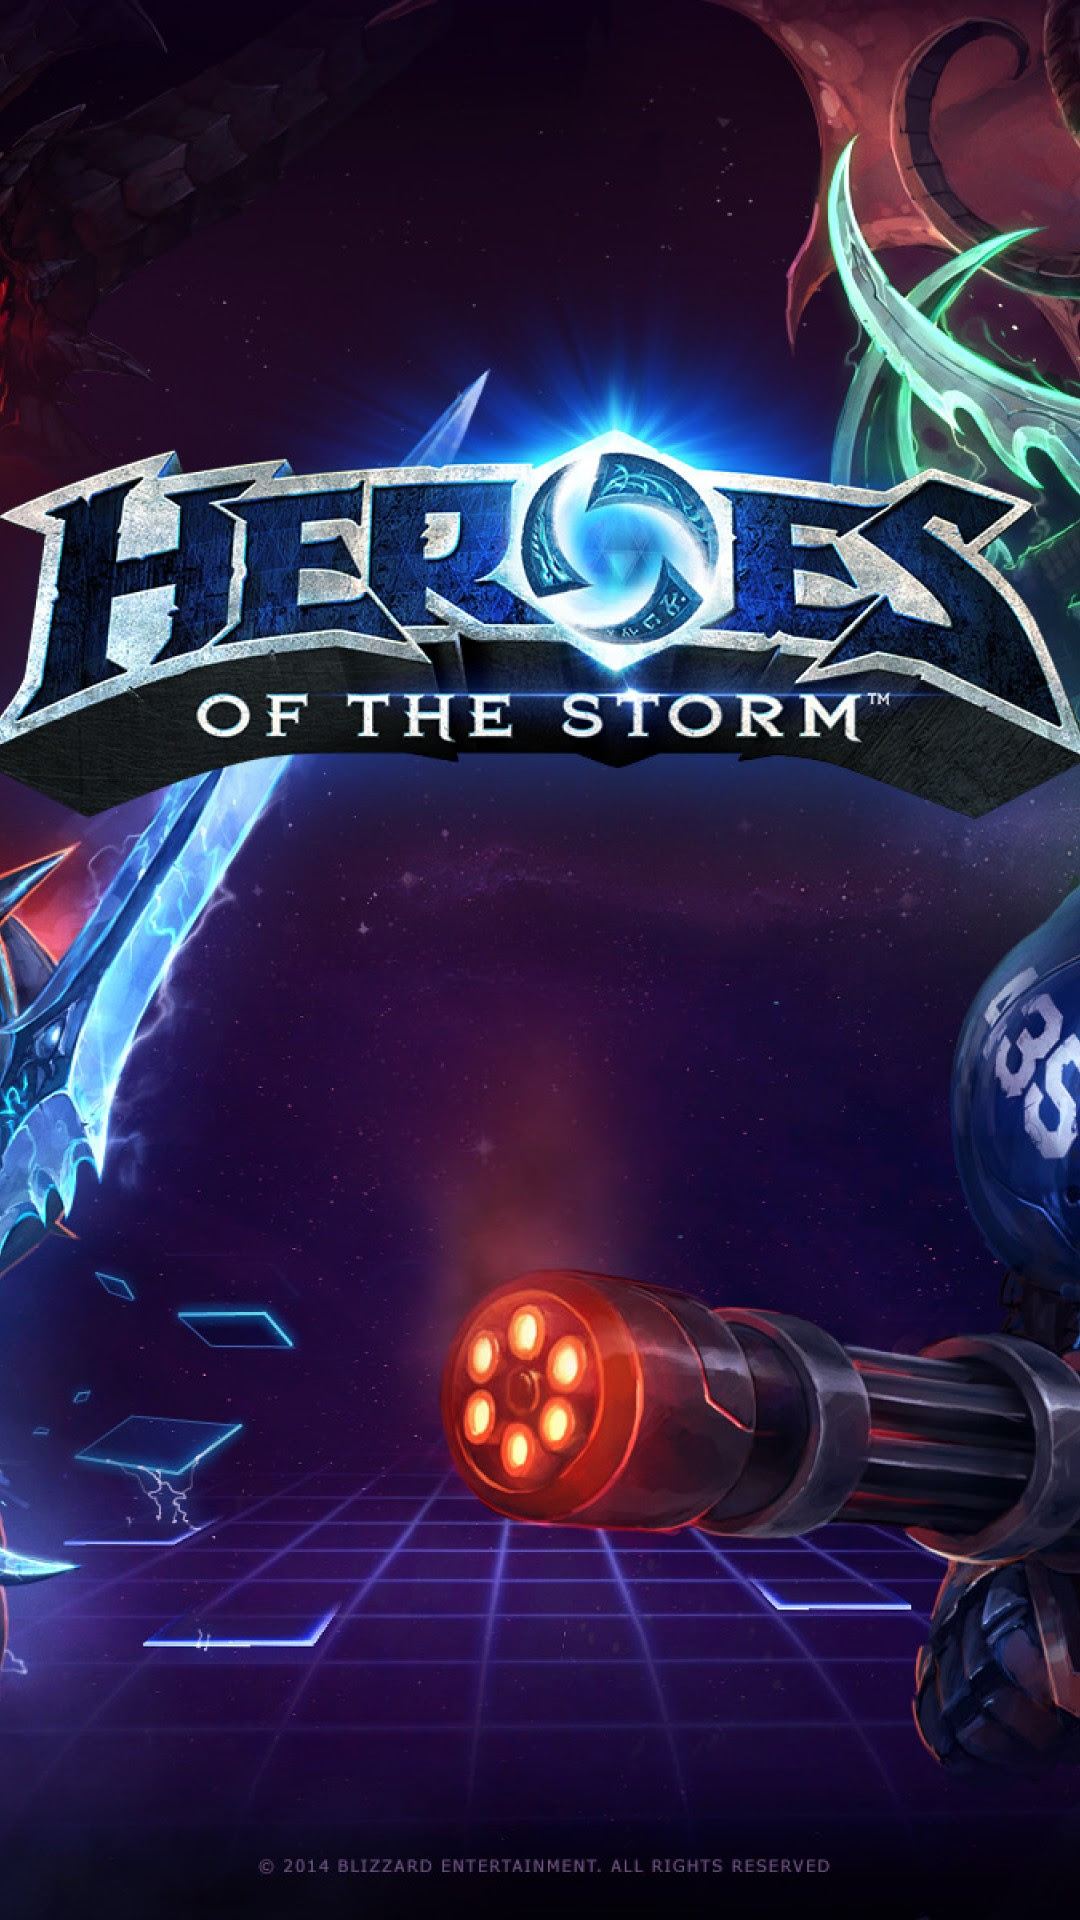 Heroes Of The Storm Hd Wallpaper For Desktop And Mobiles Iphone 6